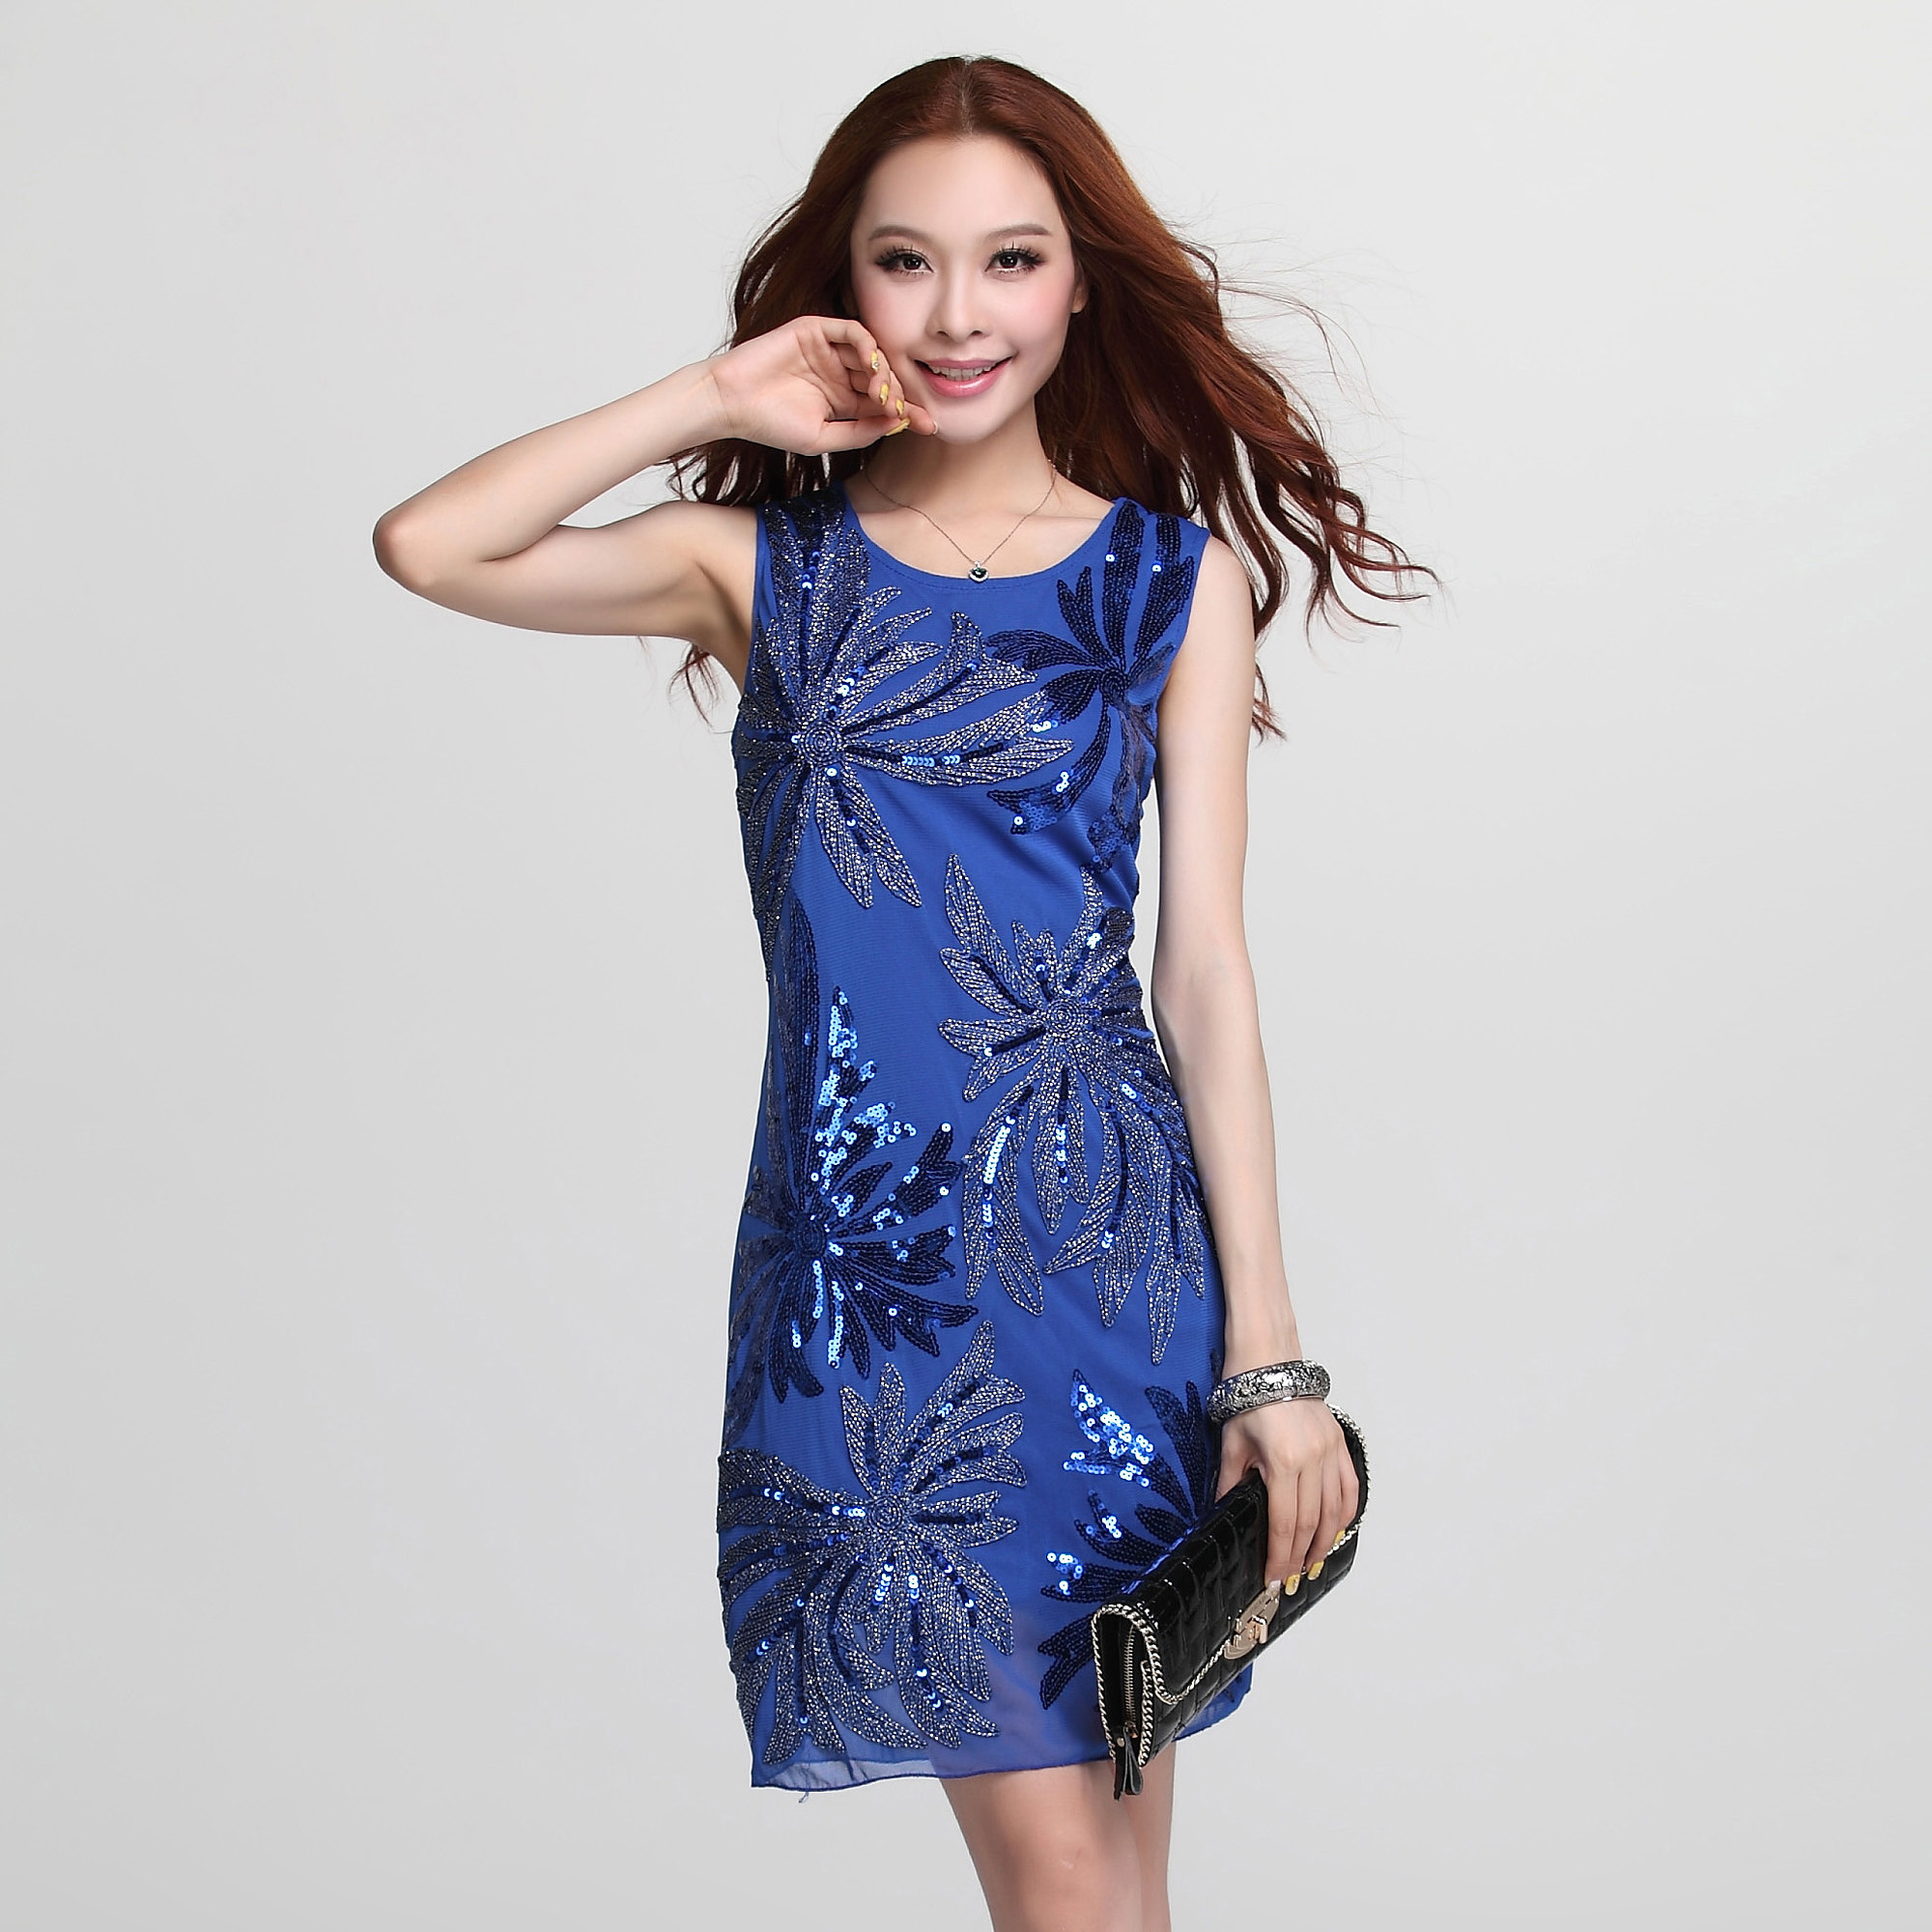 Discount Couture Dresses: Cheap Designer Clothing